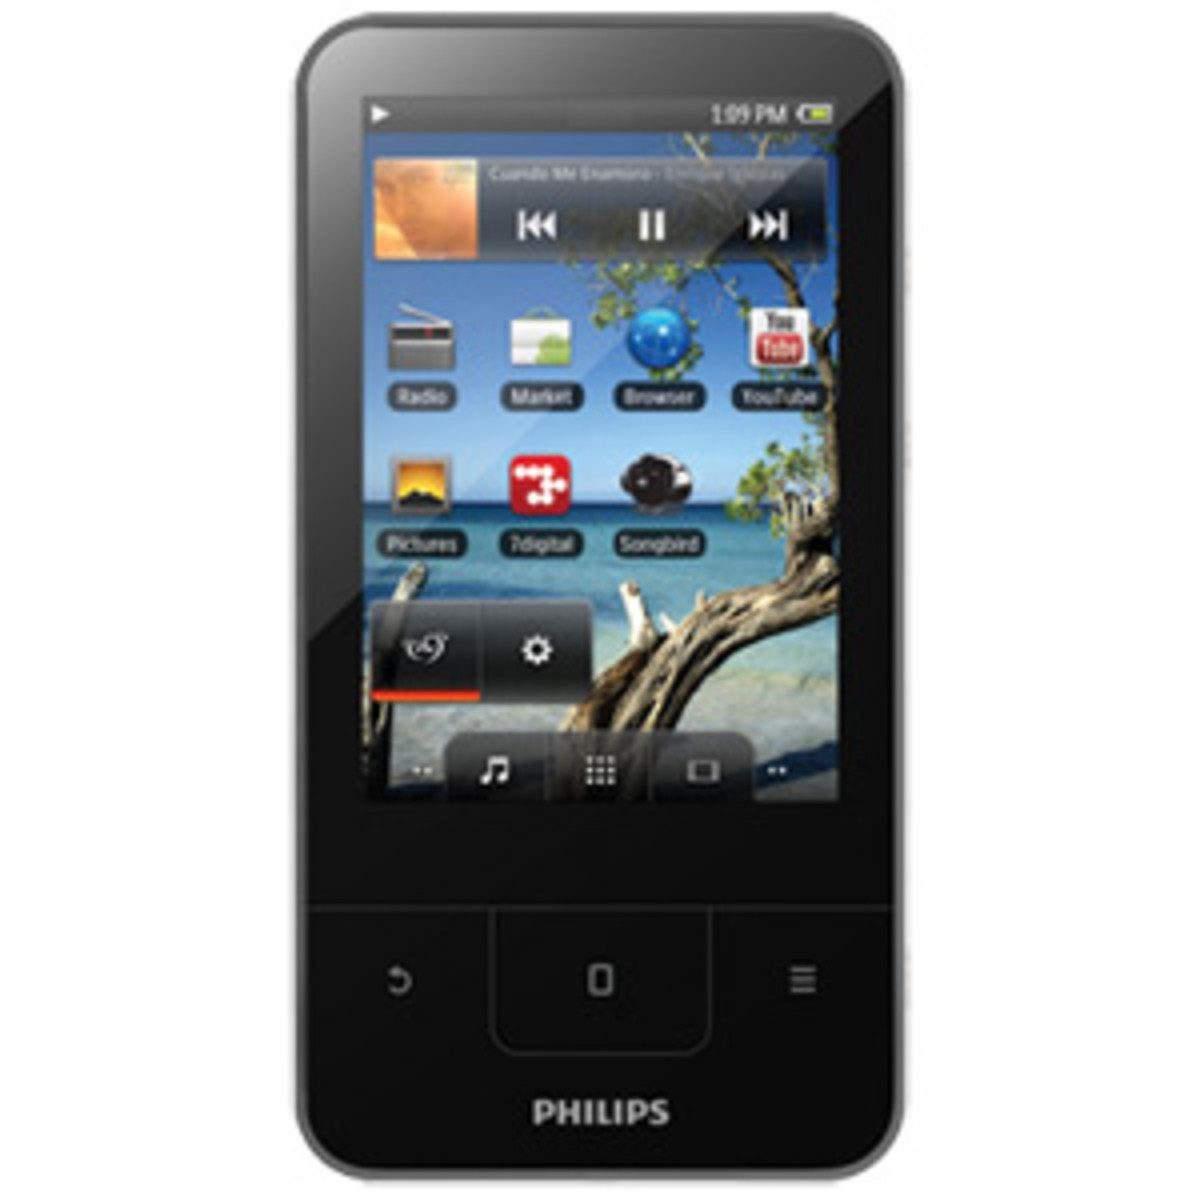 The Philips GoGEAR media player features an AM/FM tuner, a 3.2-inch display and a battery that supports up to 25 hours of audio playback and four hours of video playback.